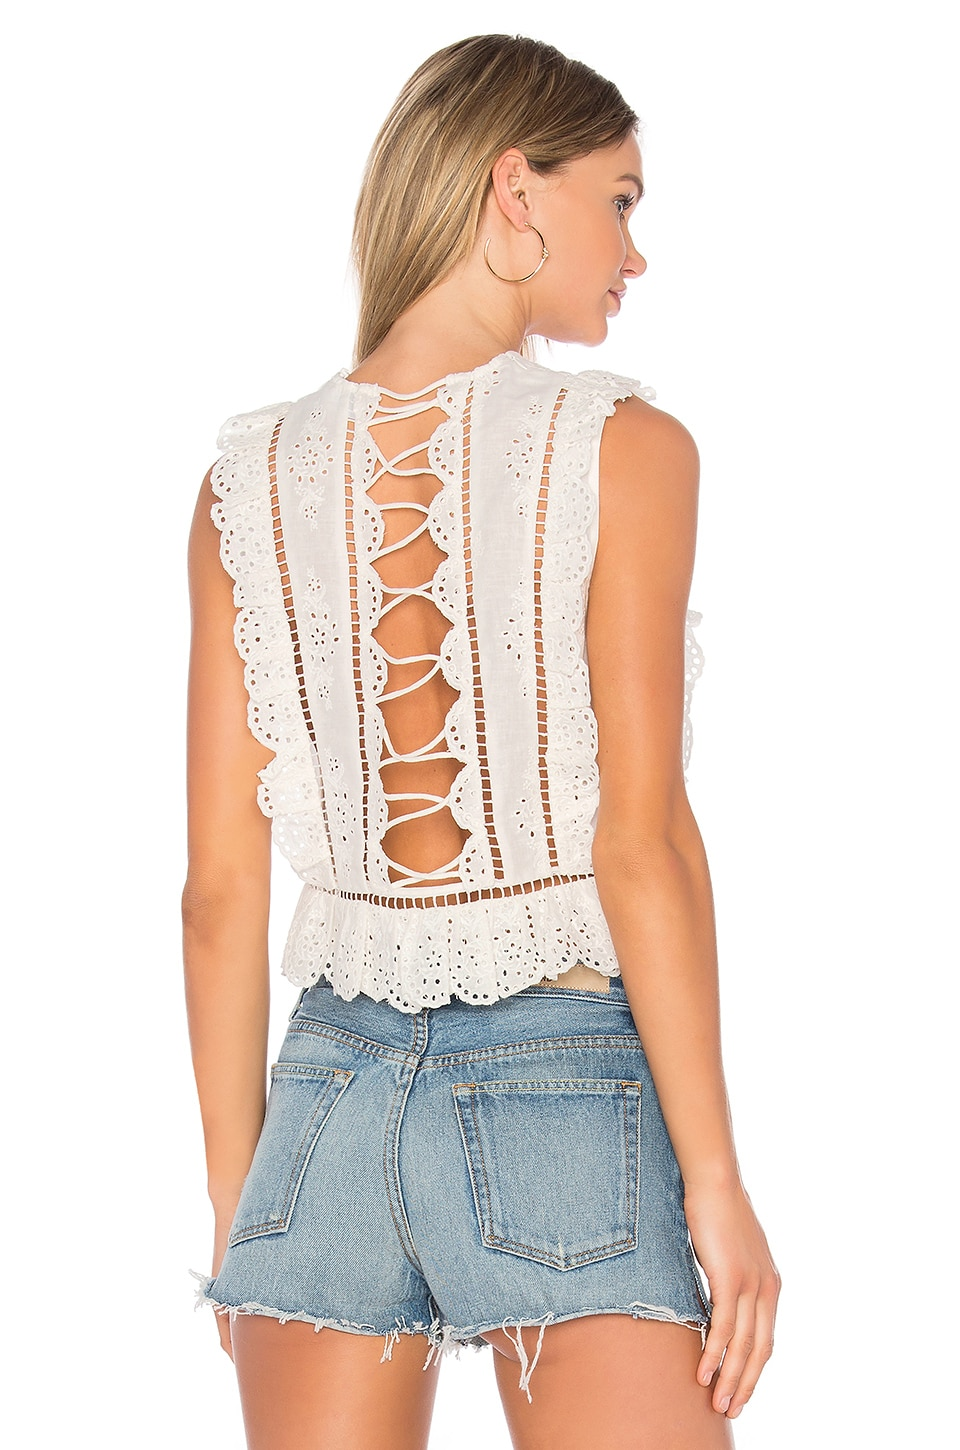 Zimmermann Valour Frill Tank in White